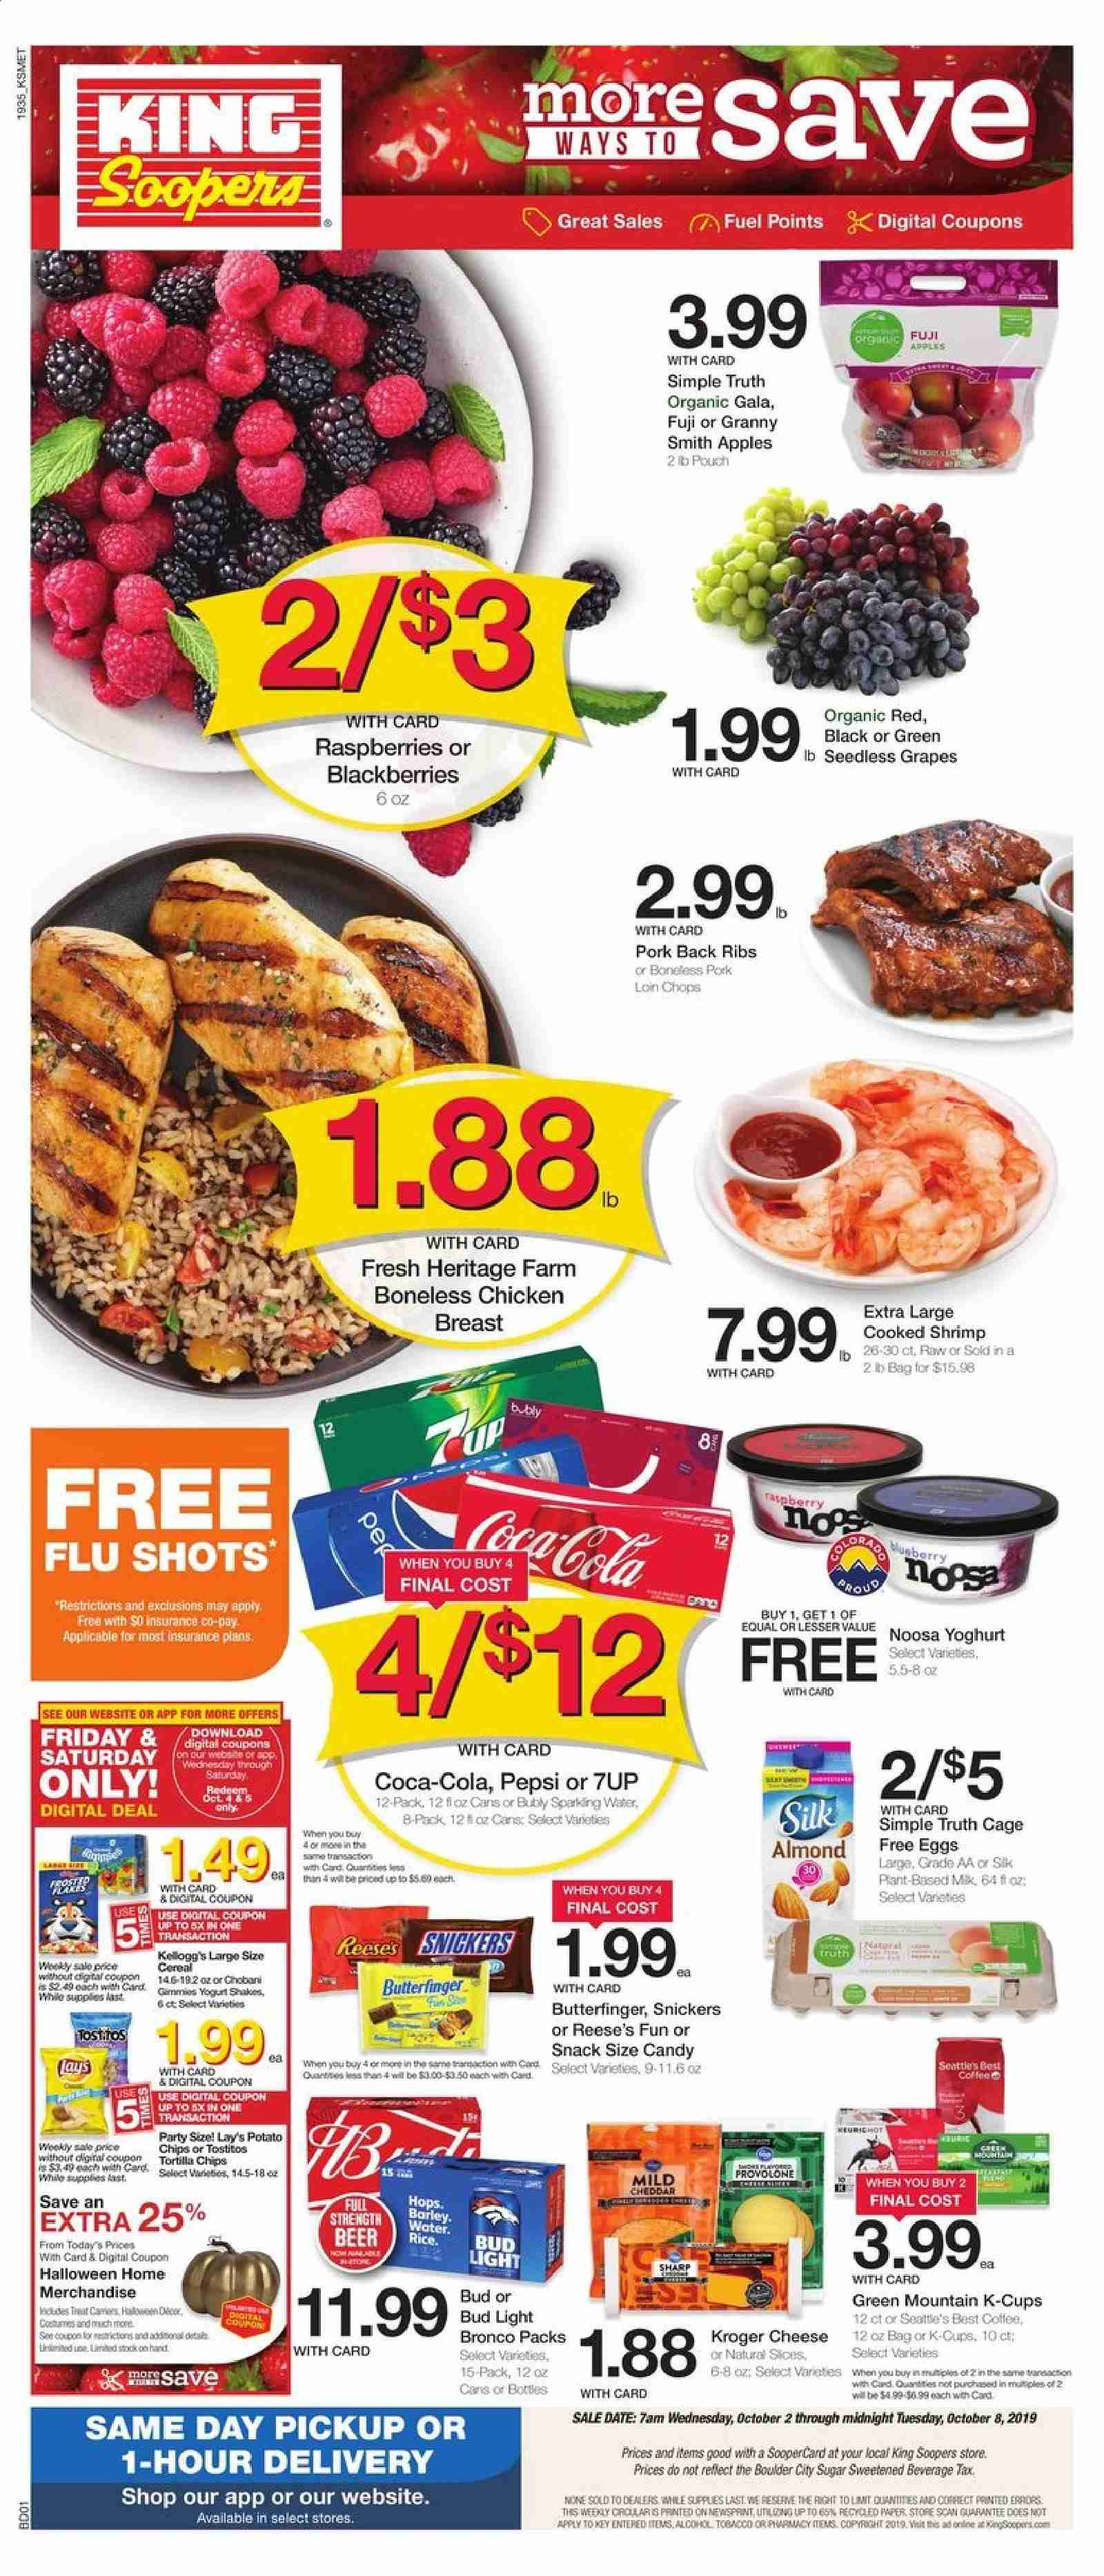 King Soopers Flyer - 10.02.2019 - 10.08.2019 - Sales products - blackberries, raspberries, seedless grapes, Fuji apple, apples, shrimps, mild cheddar, yoghurt, Chobani, shakes, eggs, cage free eggs, Reese's, candy, Snickers, tortilla chips, potato chips, chips, snack, Lay's, Tostitos, sugar, cereals, Coca-Cola, Pepsi, 7UP, coffee, coffee capsules, K-Cups, Green Mountain, alcohol, beer, Bud Light, chicken, pork loin, pork meat, pork back ribs, Sharp, paper, plant, water. Page 1.